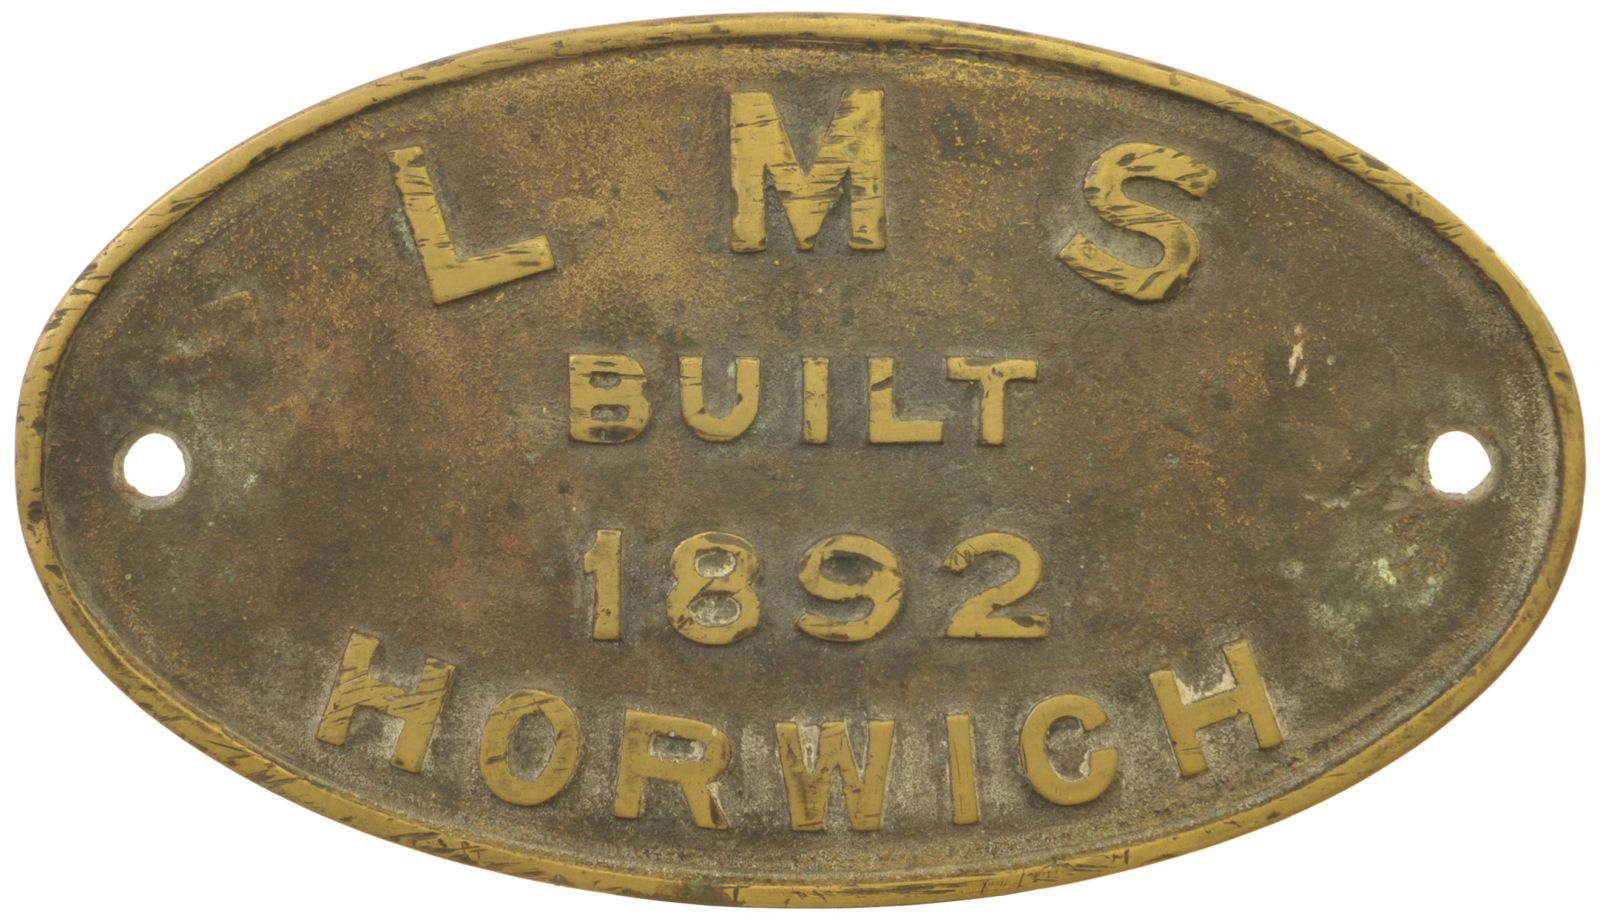 Lot 8 - Railway Locomotive Worksplates (Steam), LMS, Built Horwich, 1892 (52171): A worksplate, LMS BUILT